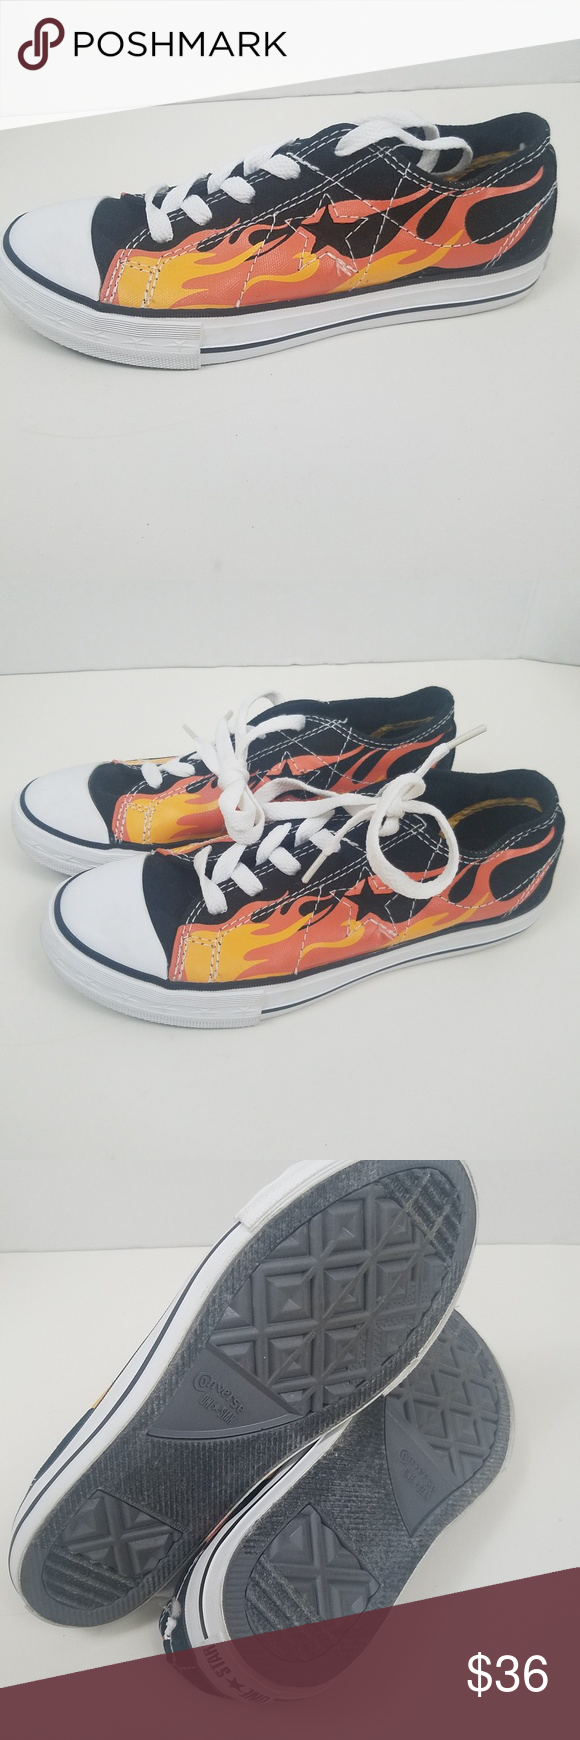 8aa5b7ea9a26 Converse One Star Shoes Sz3 Kids Flames Hard To Find Converse Shoes In Kids  Sz 3 Flames Graphics Pre owned Sneakers Converse Shoes Sneakers